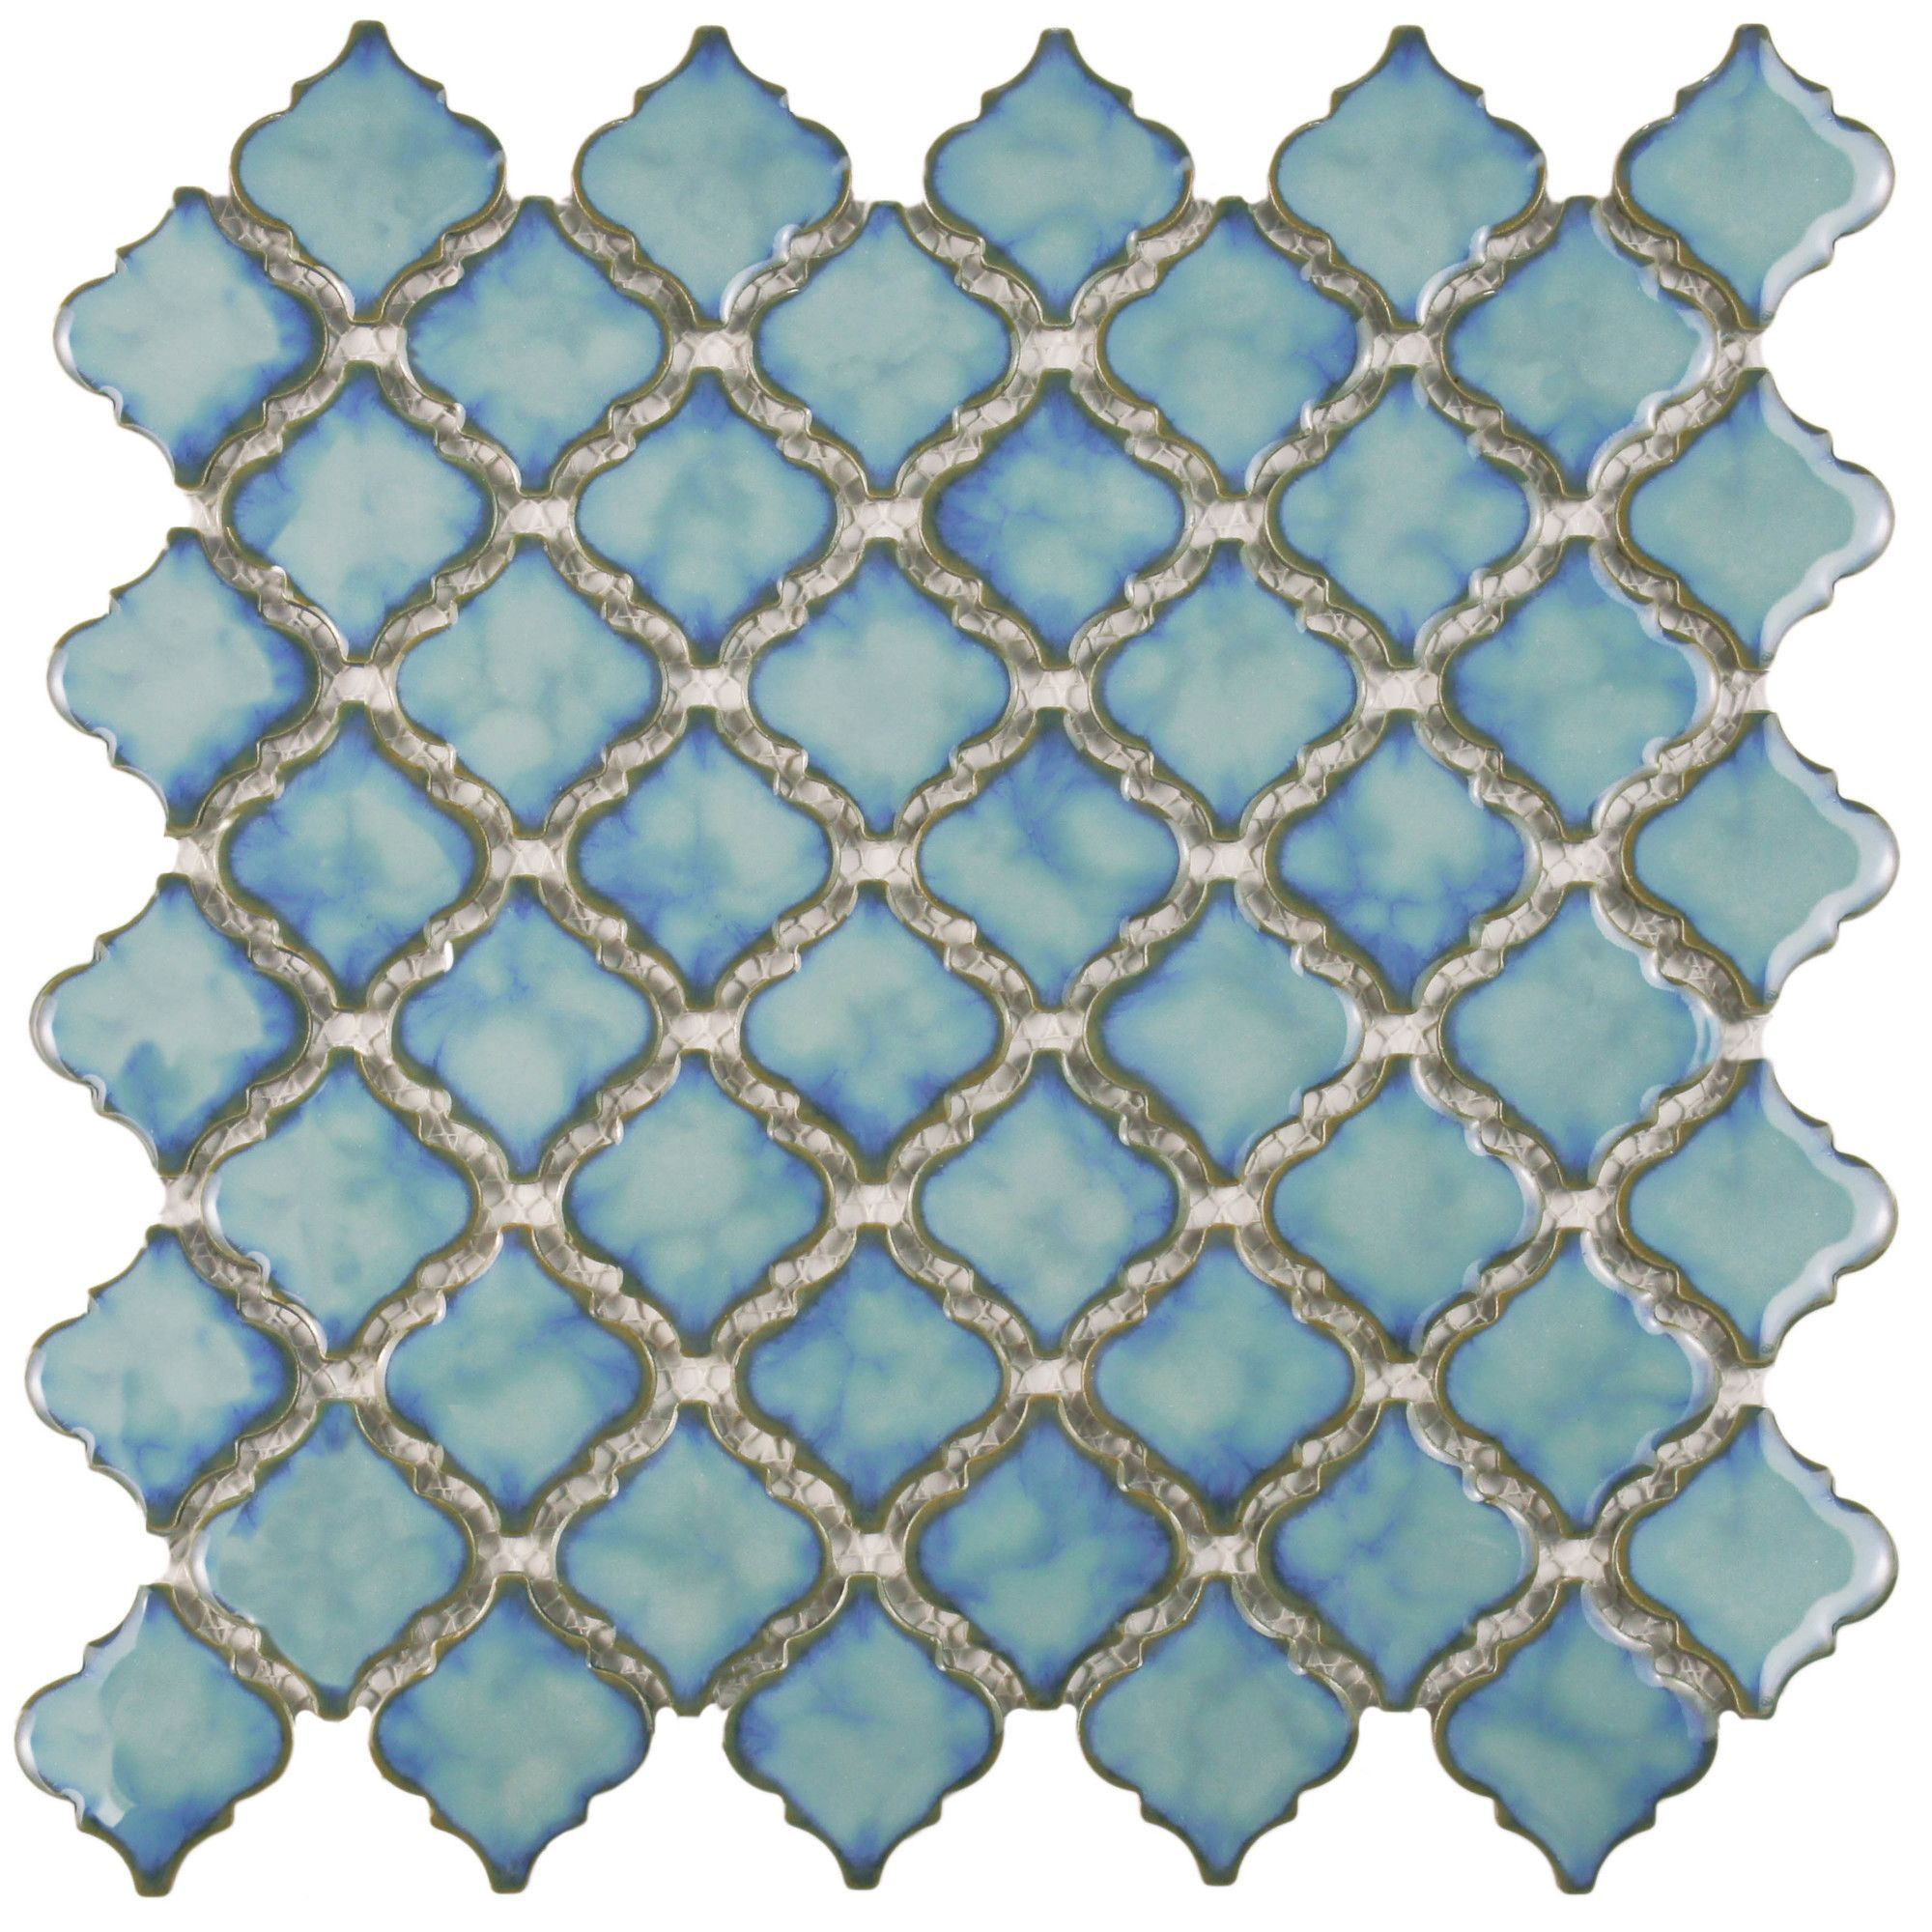 still debating the color of the arabesque moroccan style tile for still debating the color of the arabesque moroccan style tile for my kitchen backsplash